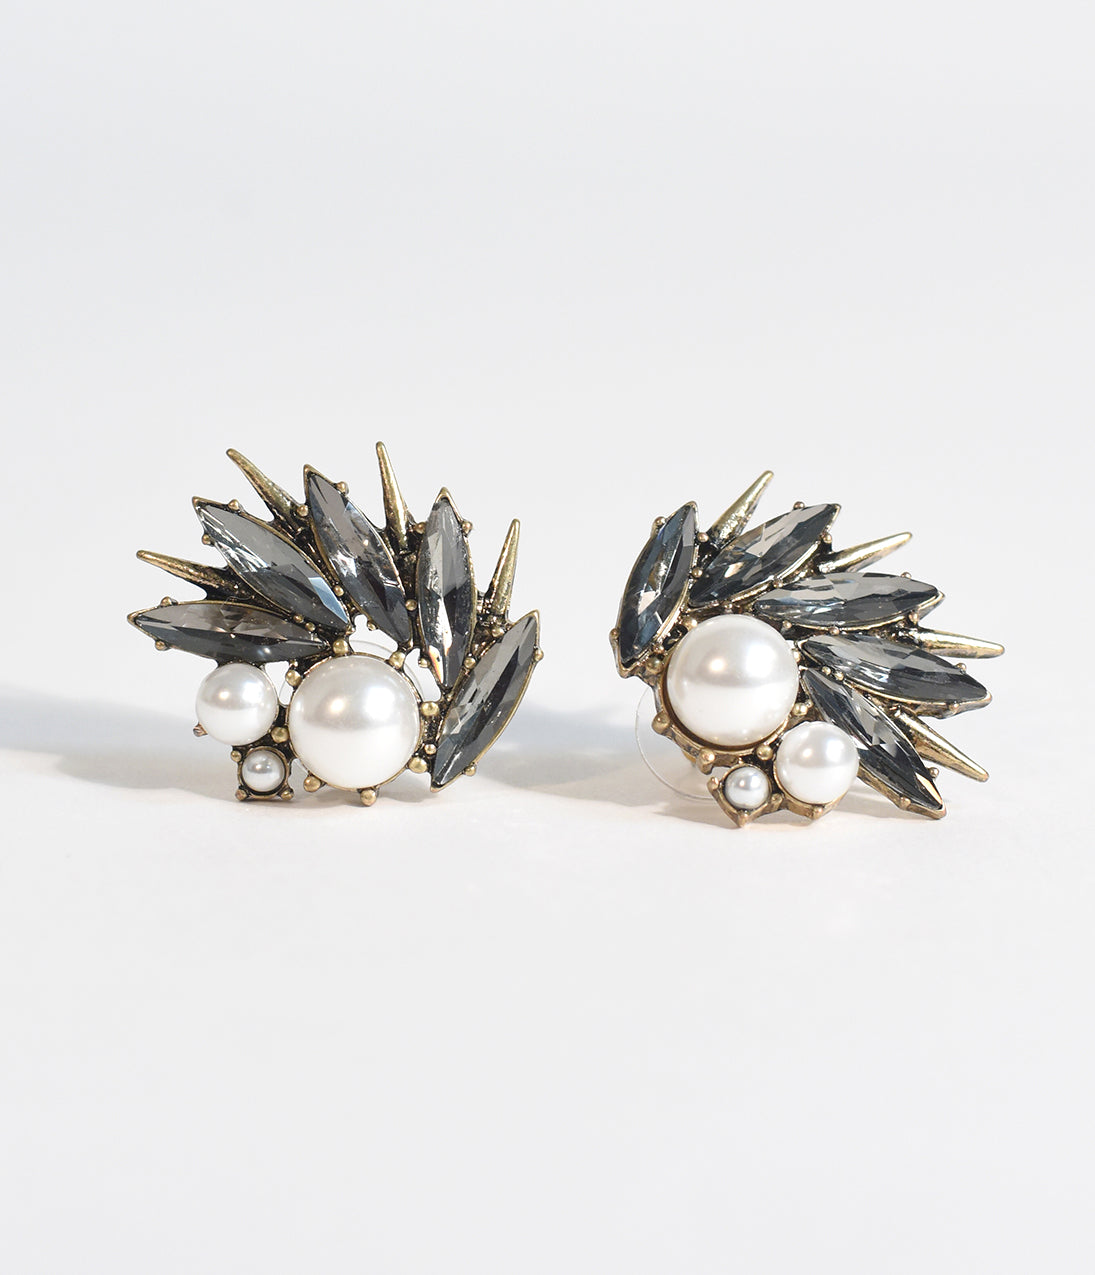 1920s Gatsby Jewelry- Flapper Earrings, Necklaces, Bracelets Deco Style Pearl  Dark Gem Thistle Stud Earrings $22.00 AT vintagedancer.com